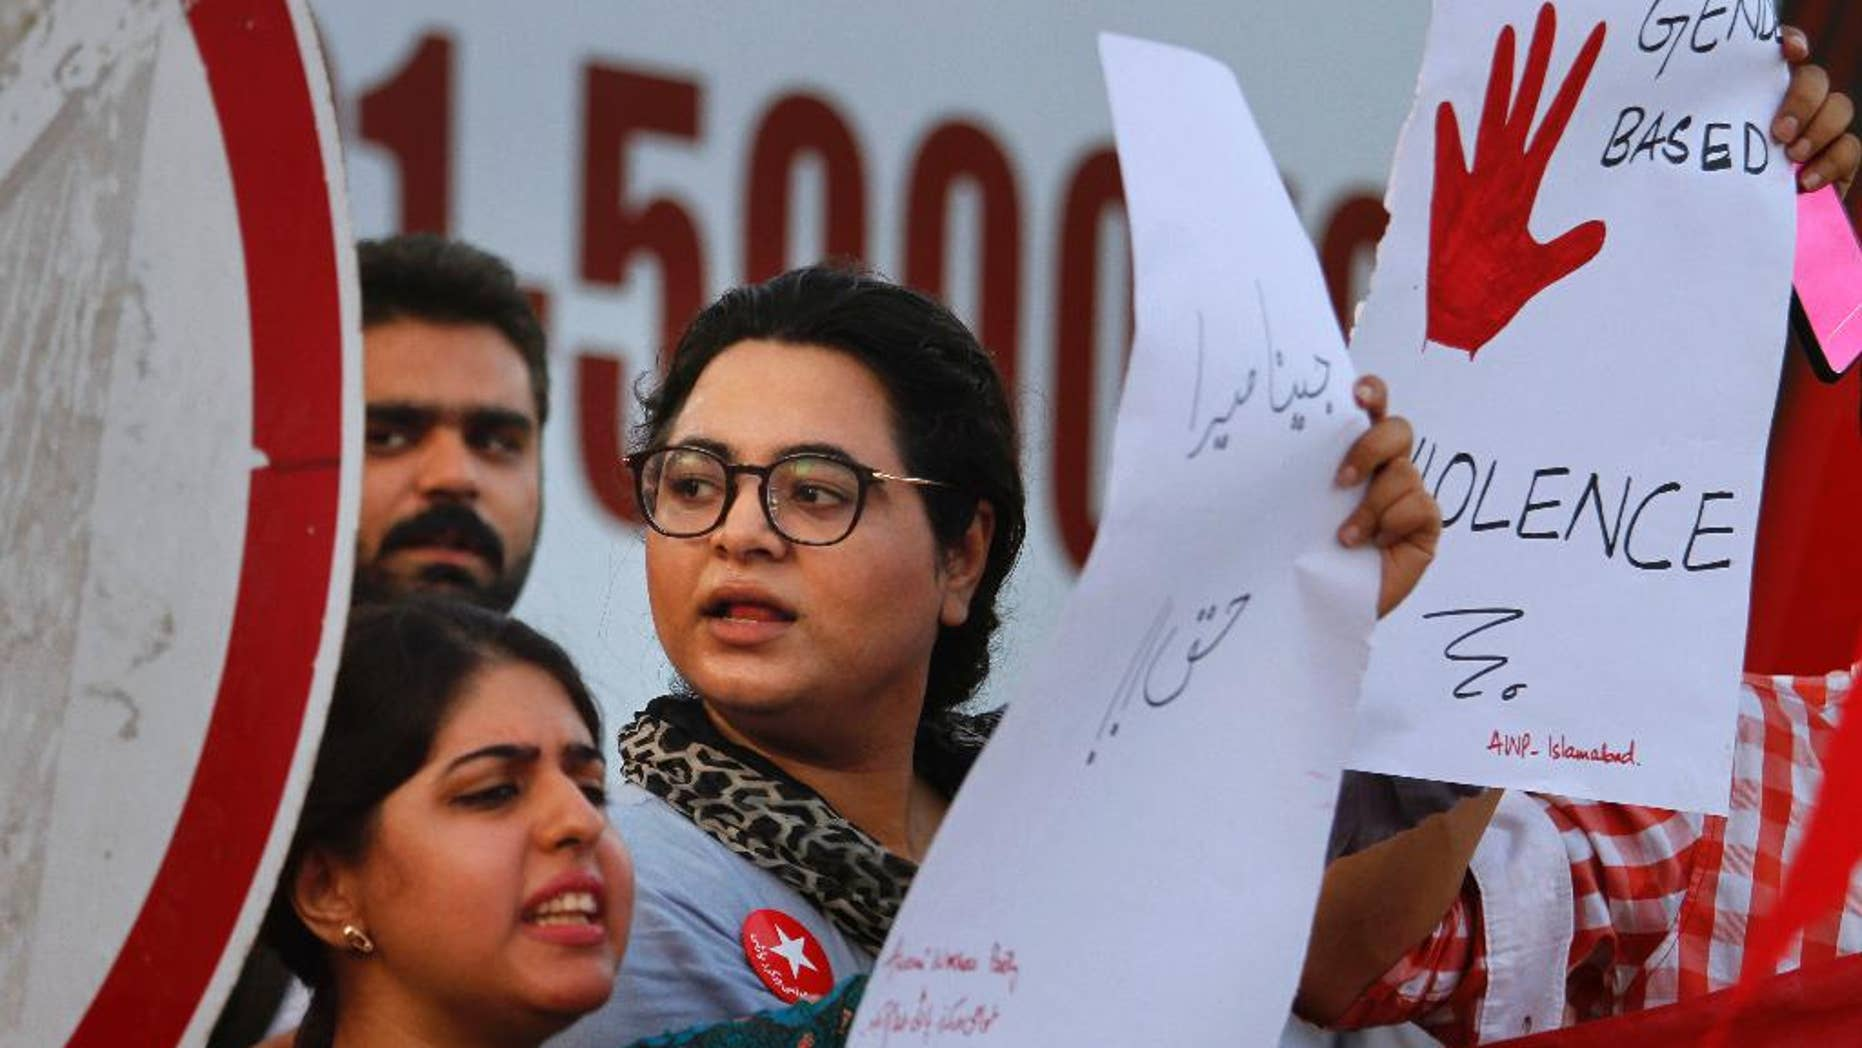 """FILE -- In this July 18, 2016 file photo, activists of the Awami Workers Party chants slogans during a demonstration to condemn the killing of model Qandeel Baloch and against """"honor killings,"""" in Islamabad, Pakistan. A Pakistani government-ordered police inquiry has recommended that the ex-husband and father of a British woman killed in Pakistan be tried on rape and murder charges. The report, shared exclusively with The Associated Press, describes the killing of Samia Shahid as """"premeditated, cold-blooded murder."""" It says that Shahid's father, Muhammad Shahid, stood guard while her ex-husband, Muhammad Shakeel, raped her. After that, they killed her together. (AP Photo/Anjum Naveed, File)"""